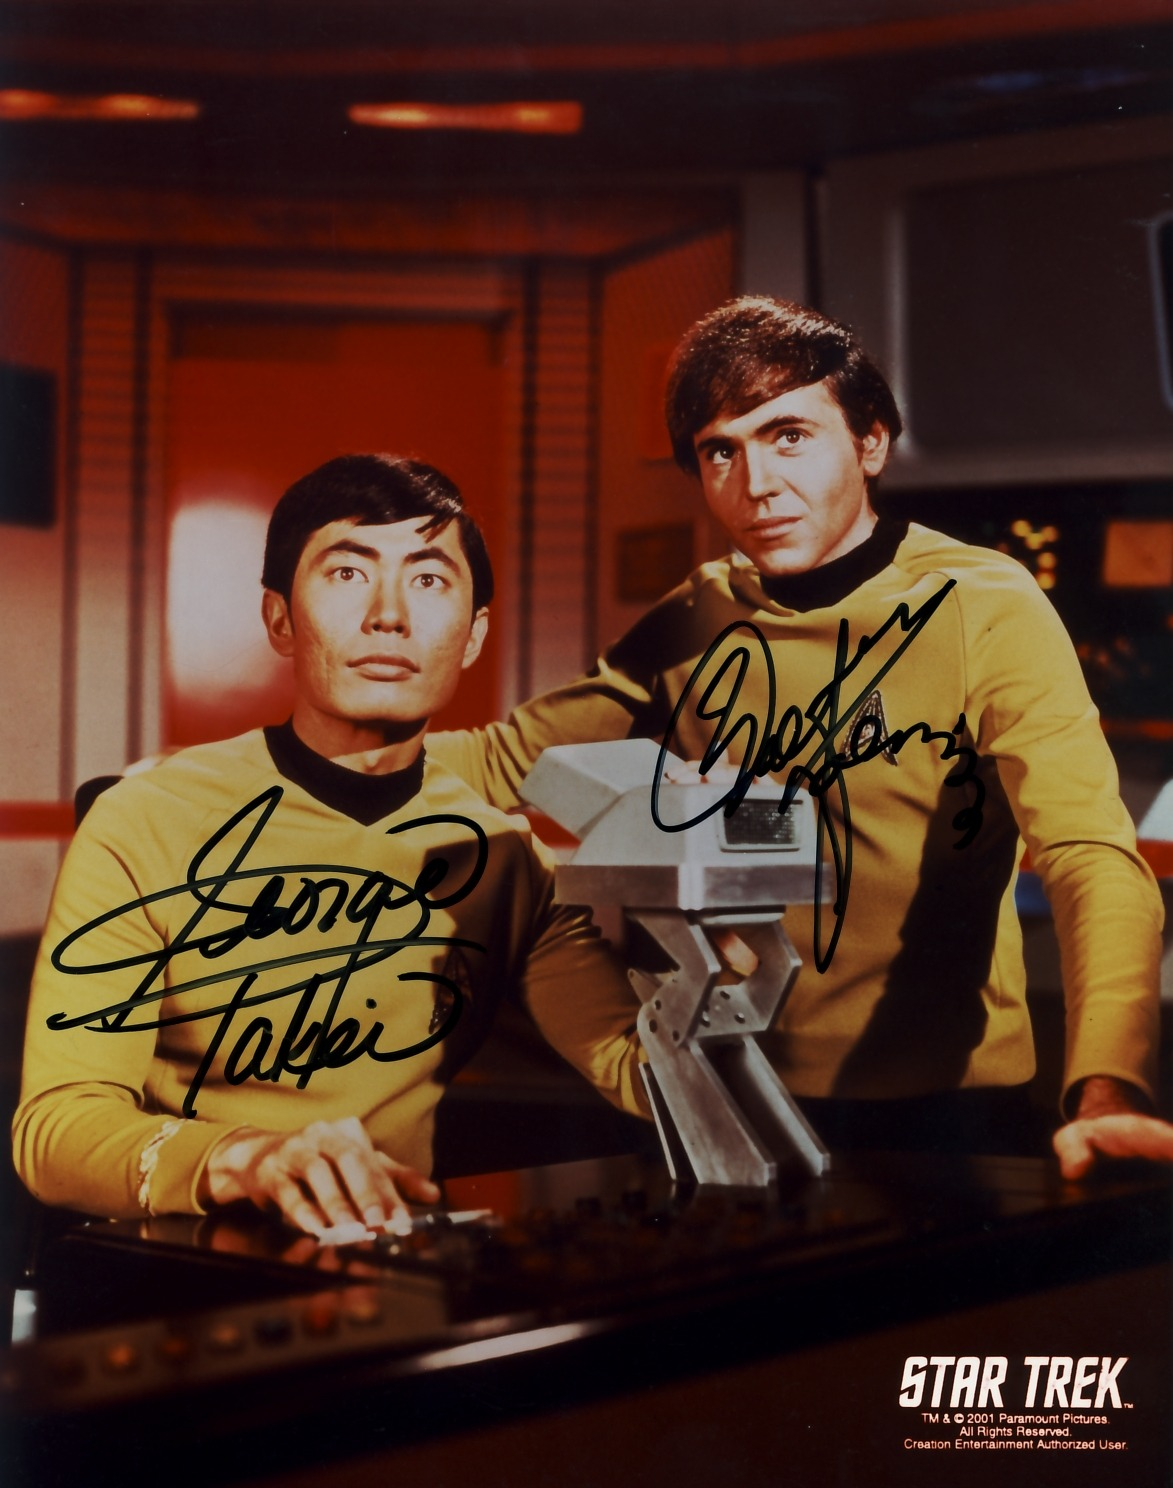 George Takei as Lieutenant Sulu and Walter Koenig as Ensign Chekov in the only publicity still of just the two of them from the Original Series.  It was also one of the first 'buddy shots' that convention organizers started to produce after the multitude of requests they got about such.  In the earlier days of conventions, vendors would produce such knowing the fan desire.  But in the late 1990s Paramount waged war on such 'unlicensed' photos and for about a decade, you could only get the handful of photos that got licensed (and usually sucked!) I've always liked such photos.  Thankfully, in the past decade though, if such doesn't exist of a specific pairing of characters, the company will make such.  Which is how it should be, damnit!  I'd like to take some credit for such, having made numerous requests during the years before they made such, but I imagine it would take more than one annoyingly persistent fan… ((Like This?  Check Out My Archive and Follow Me!))